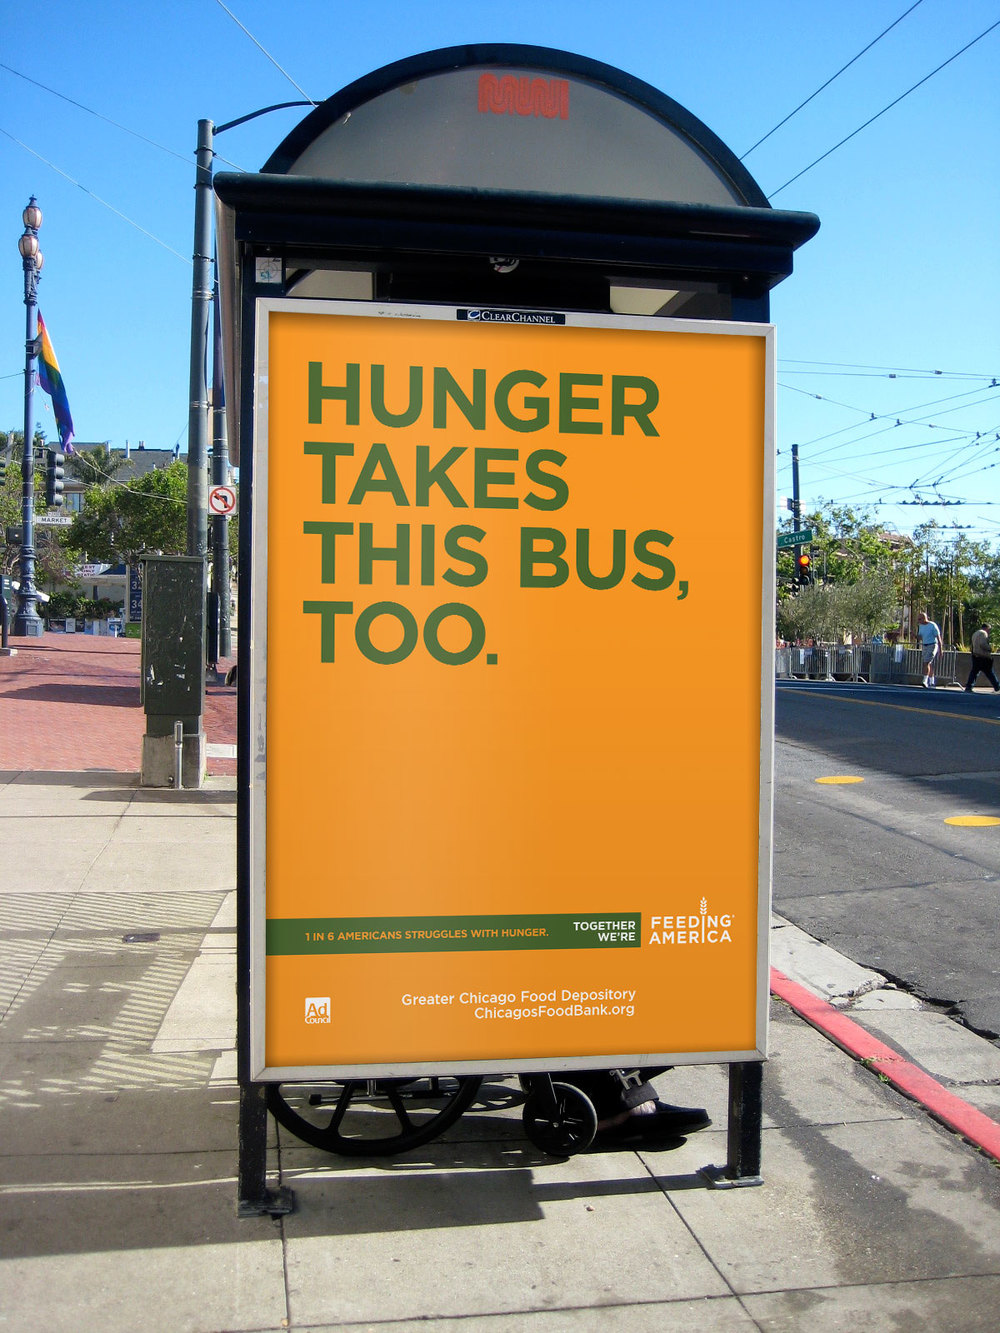 Feeding-America-Bus-Hunger